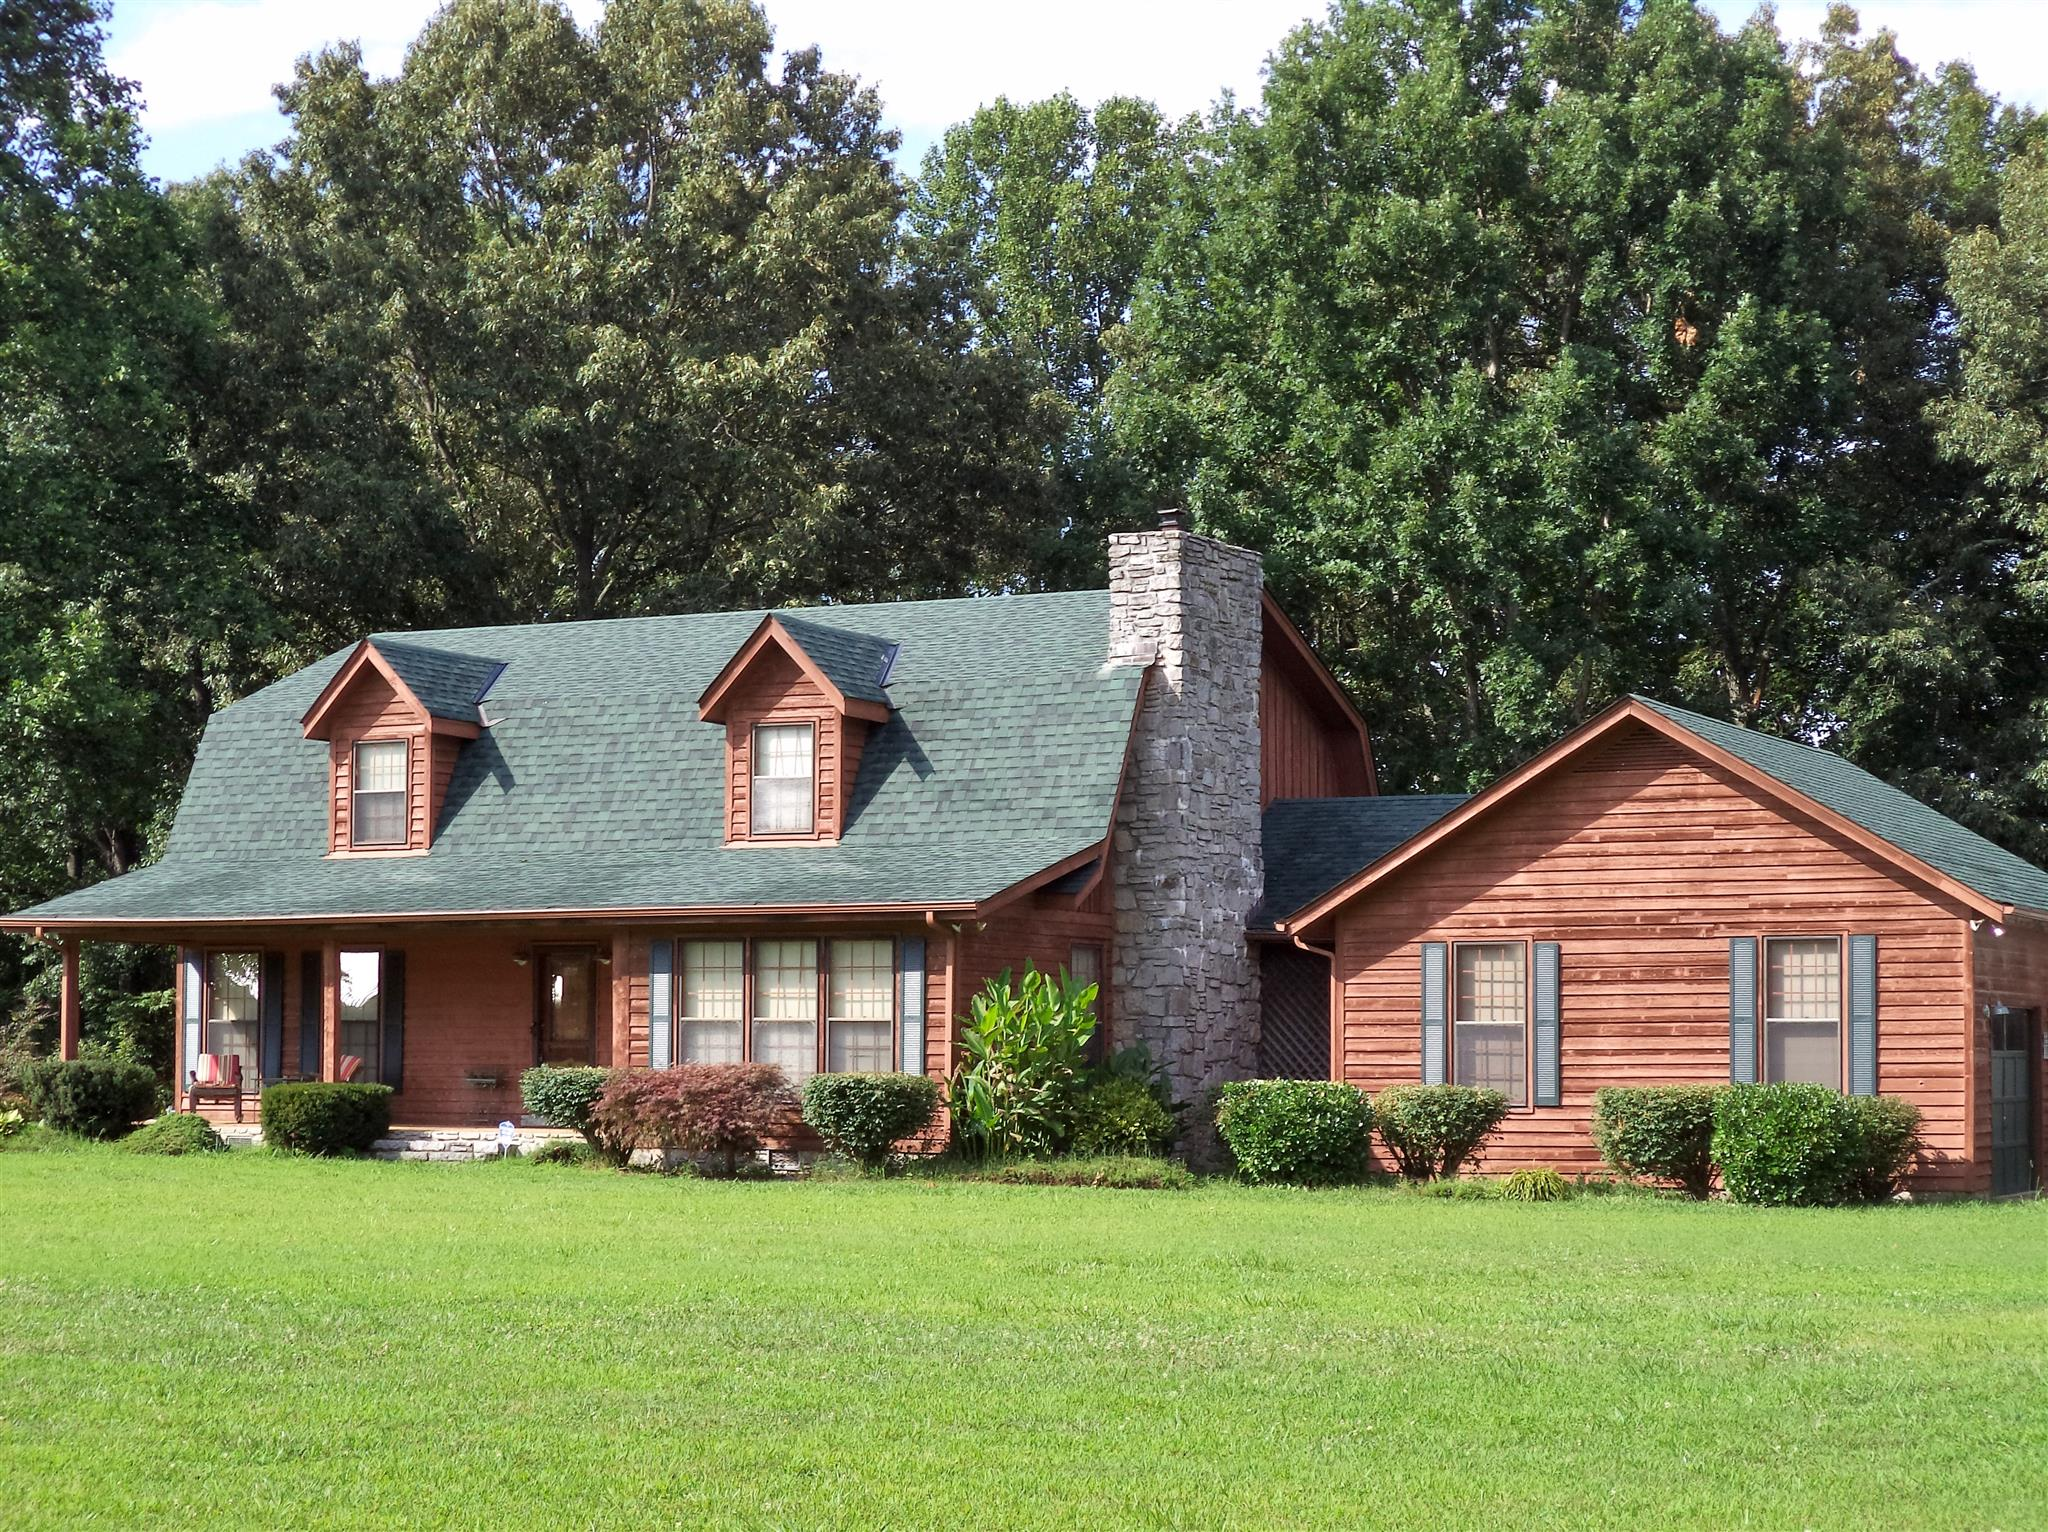 951 Carole Anne Dr, Woodbury, TN 37190